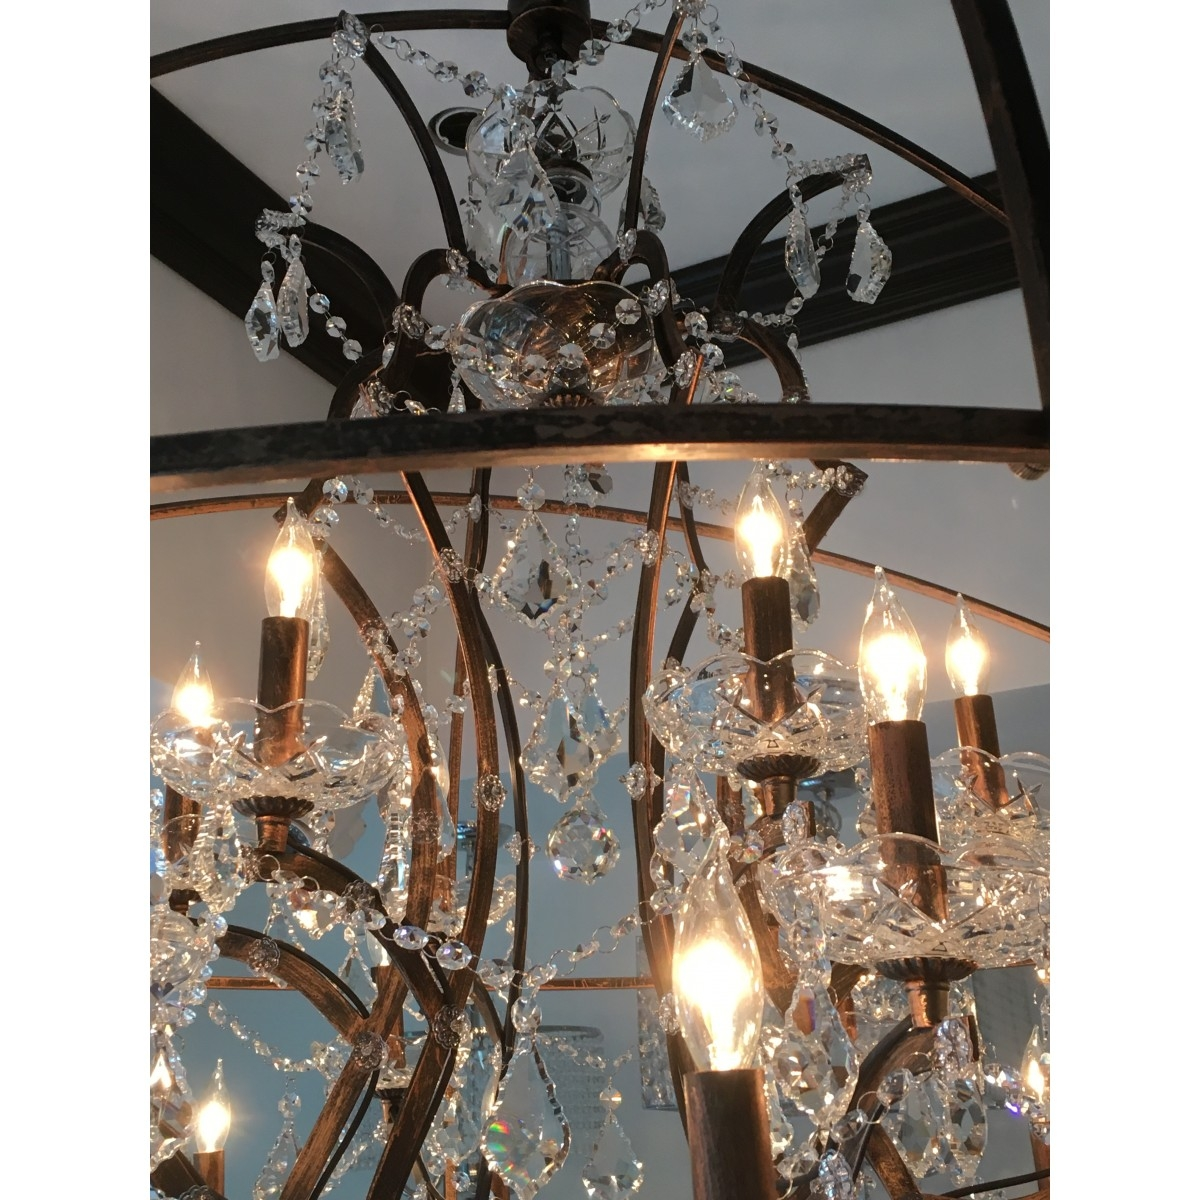 Aspasia Of Athens Ii 25 Lights Solaris Crystals Oversized For Oversized Chandeliers (View 9 of 15)